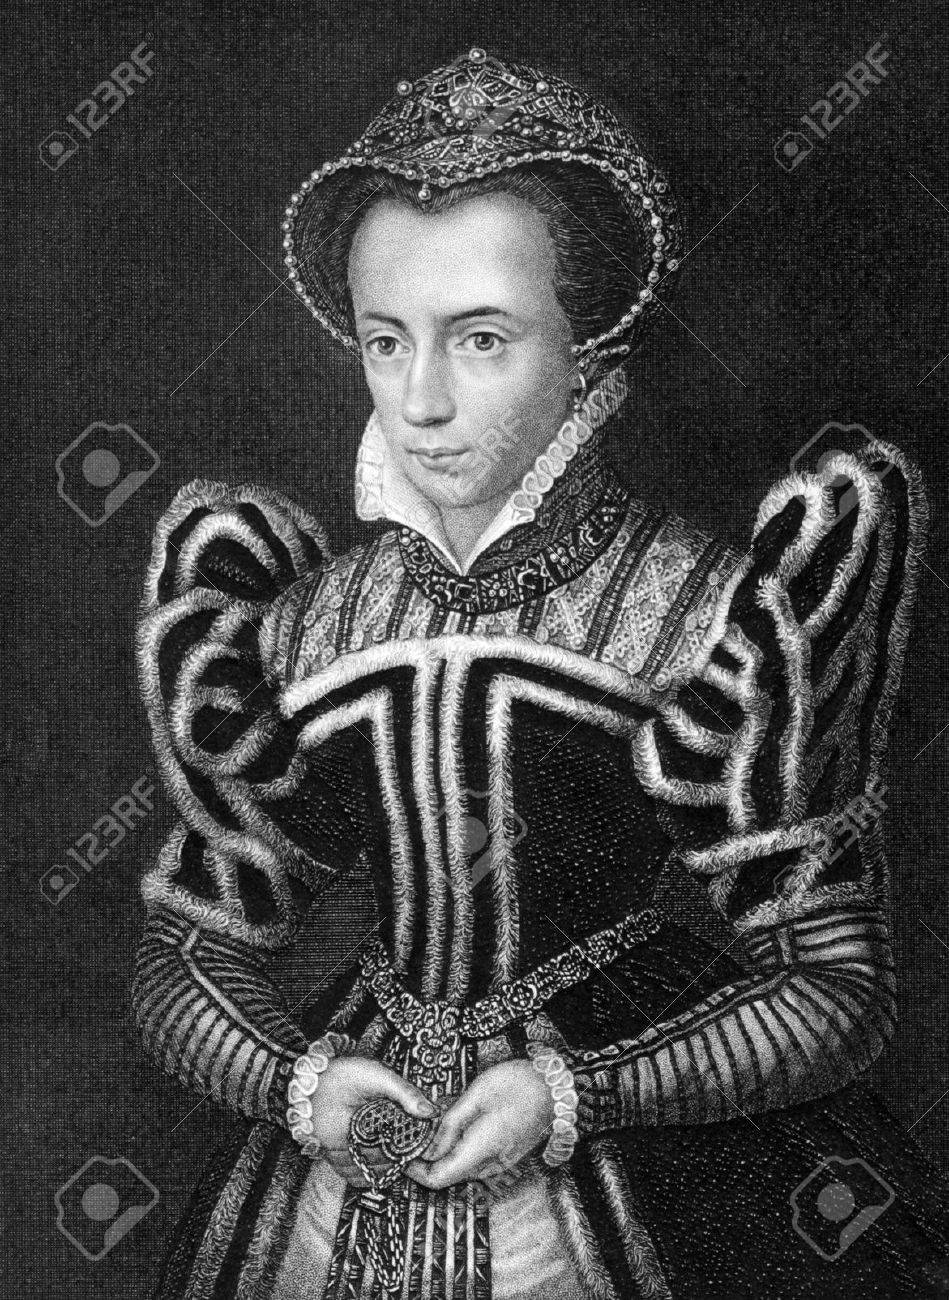 Mary I of England (1516-1558) on engraving from 1838. Queen regnant